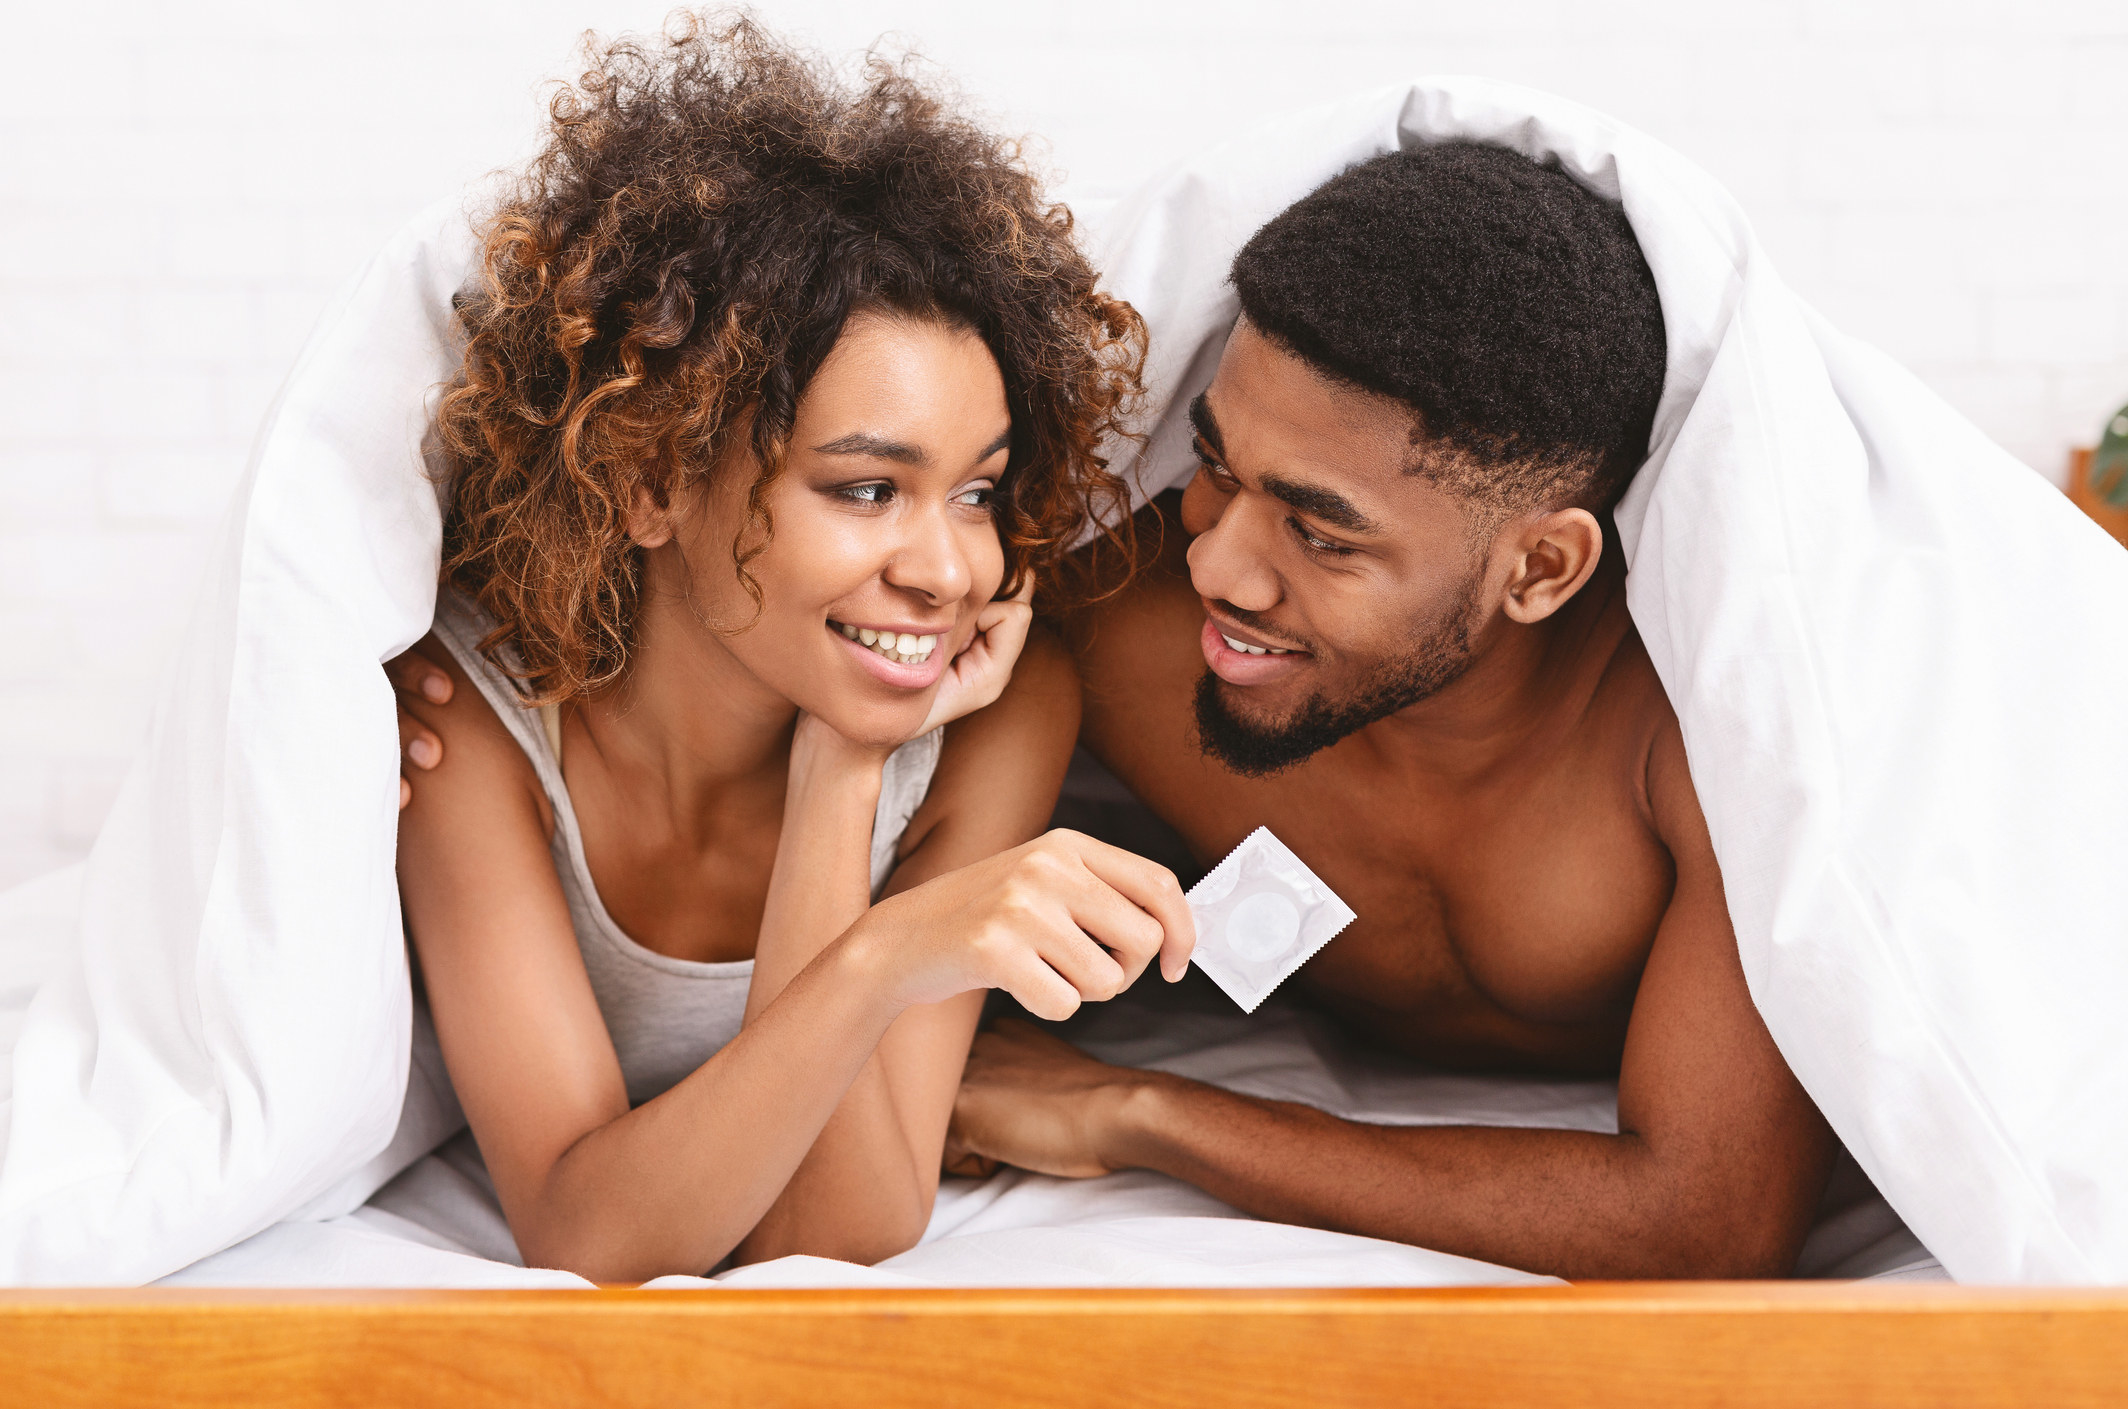 Photo of a couple in bed with a condom